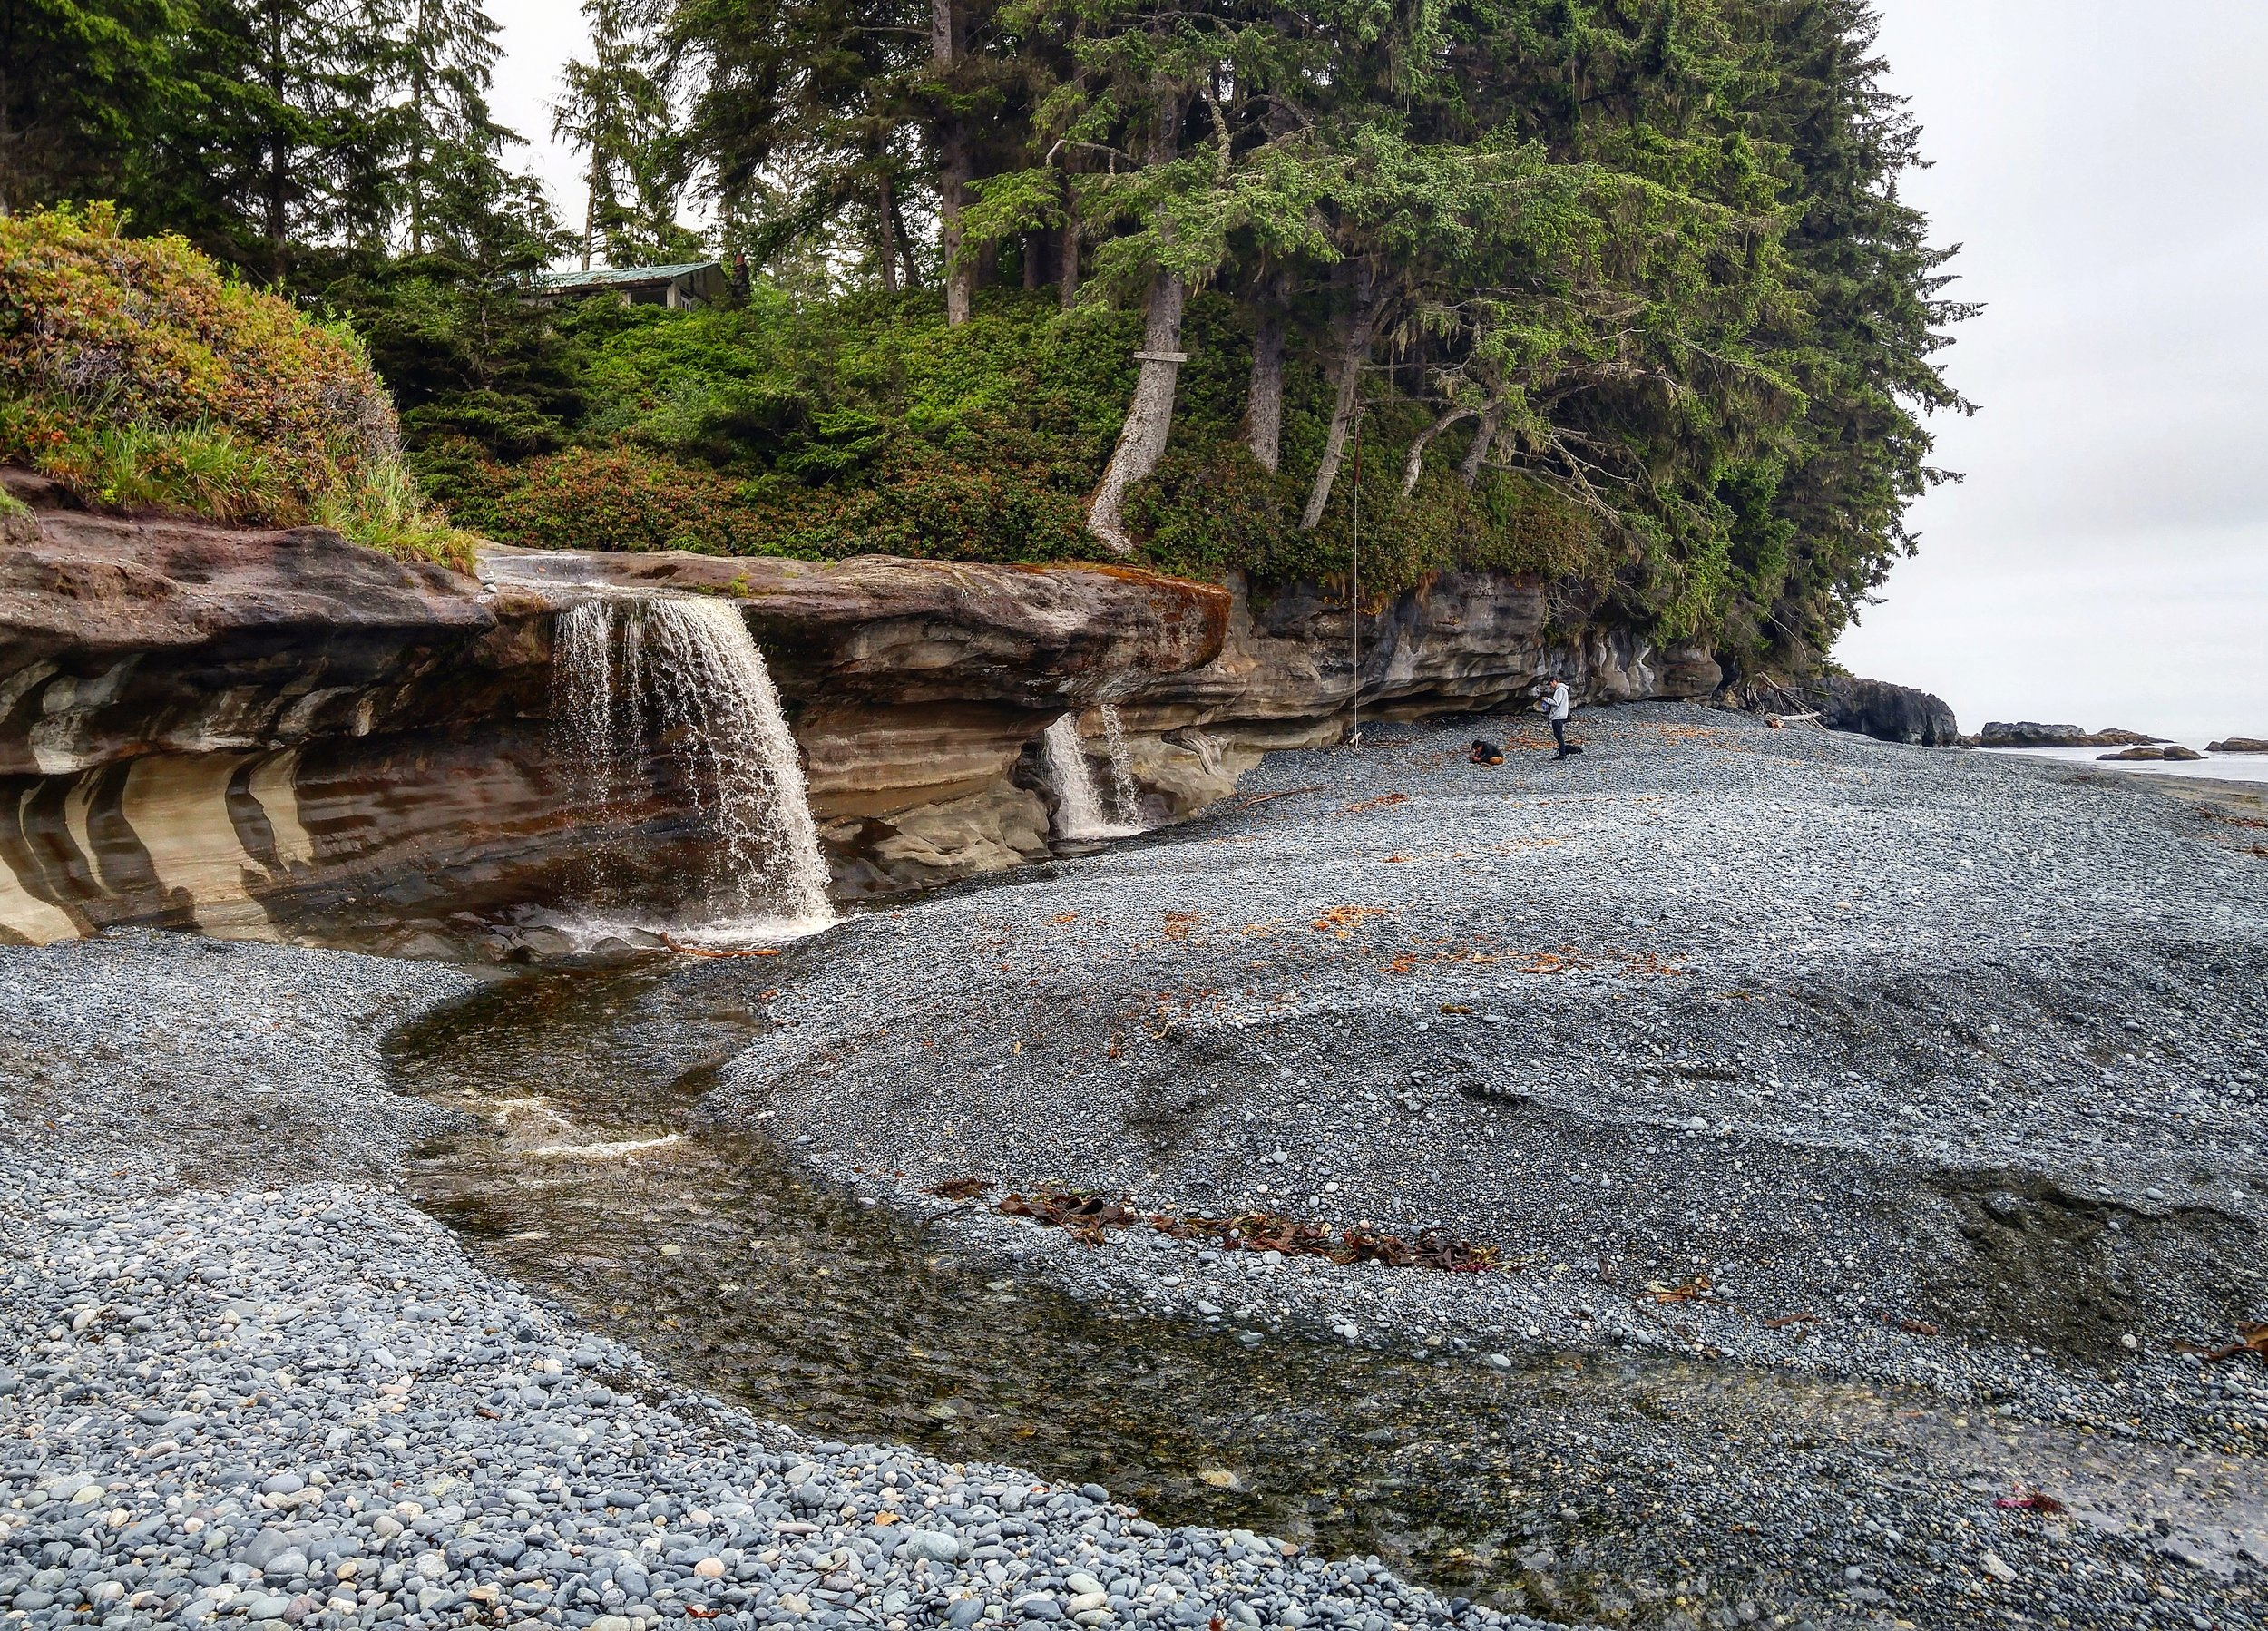 Sooke Road, which meanders North along the West Coast of the Island, is littered with absolute gems like this spot- Sandcut Beach.